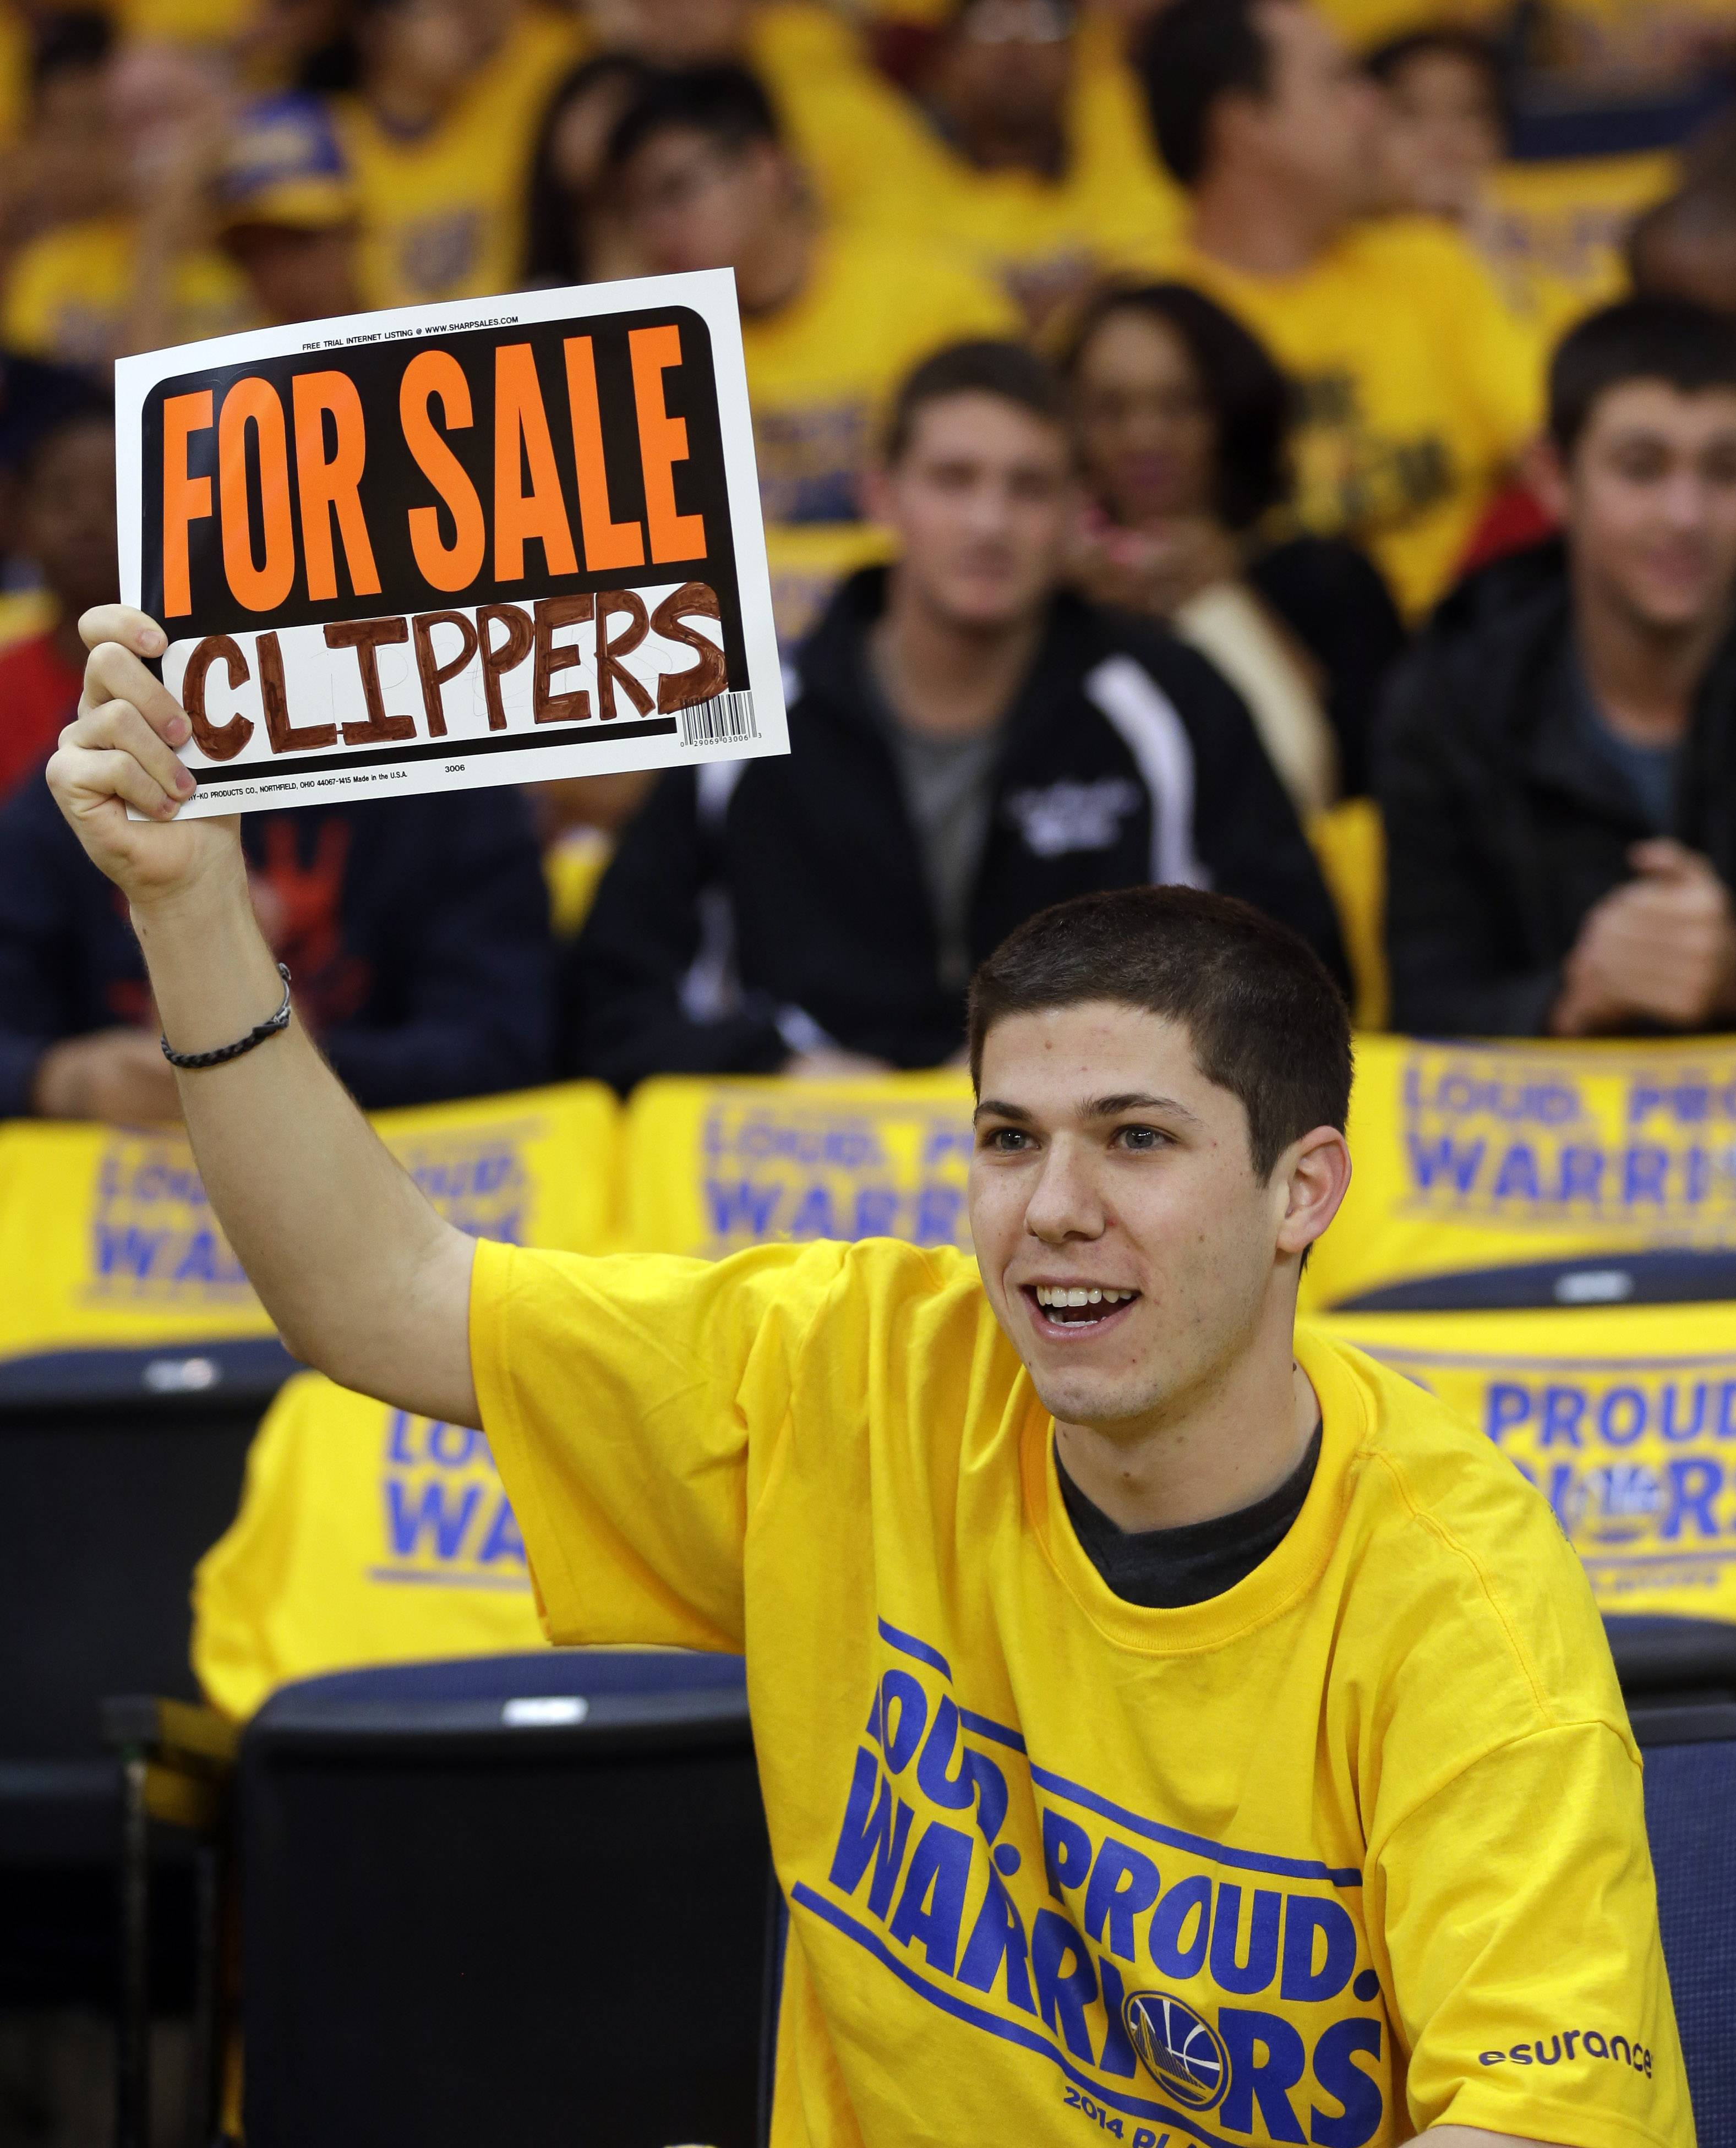 Fan Kevin Phillips holds up a sign making light of controversies surrounding the Los Angeles Clippers before Game 4 of an opening-round NBA basketball playoff series against the Golden State Warriors on Sunday, April 27, 2014, in Oakland, Calif.